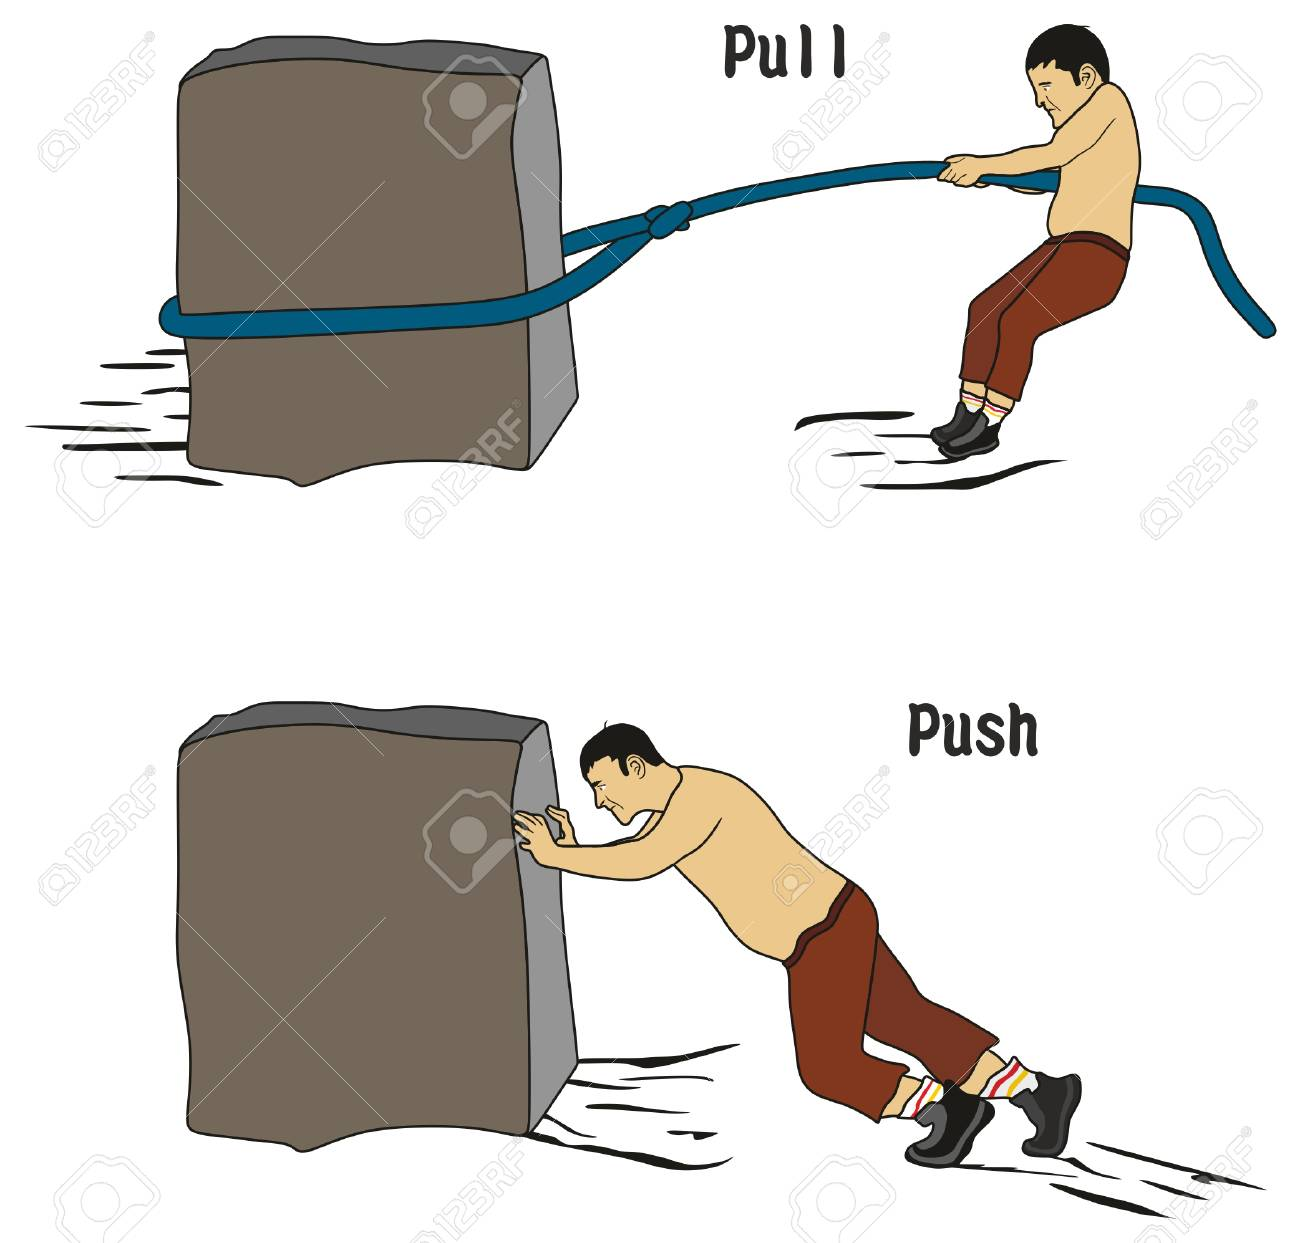 Pull and Push Concept for education conceptual drawing showing man pulling heavy stone using rope while other pushing it - 88190002